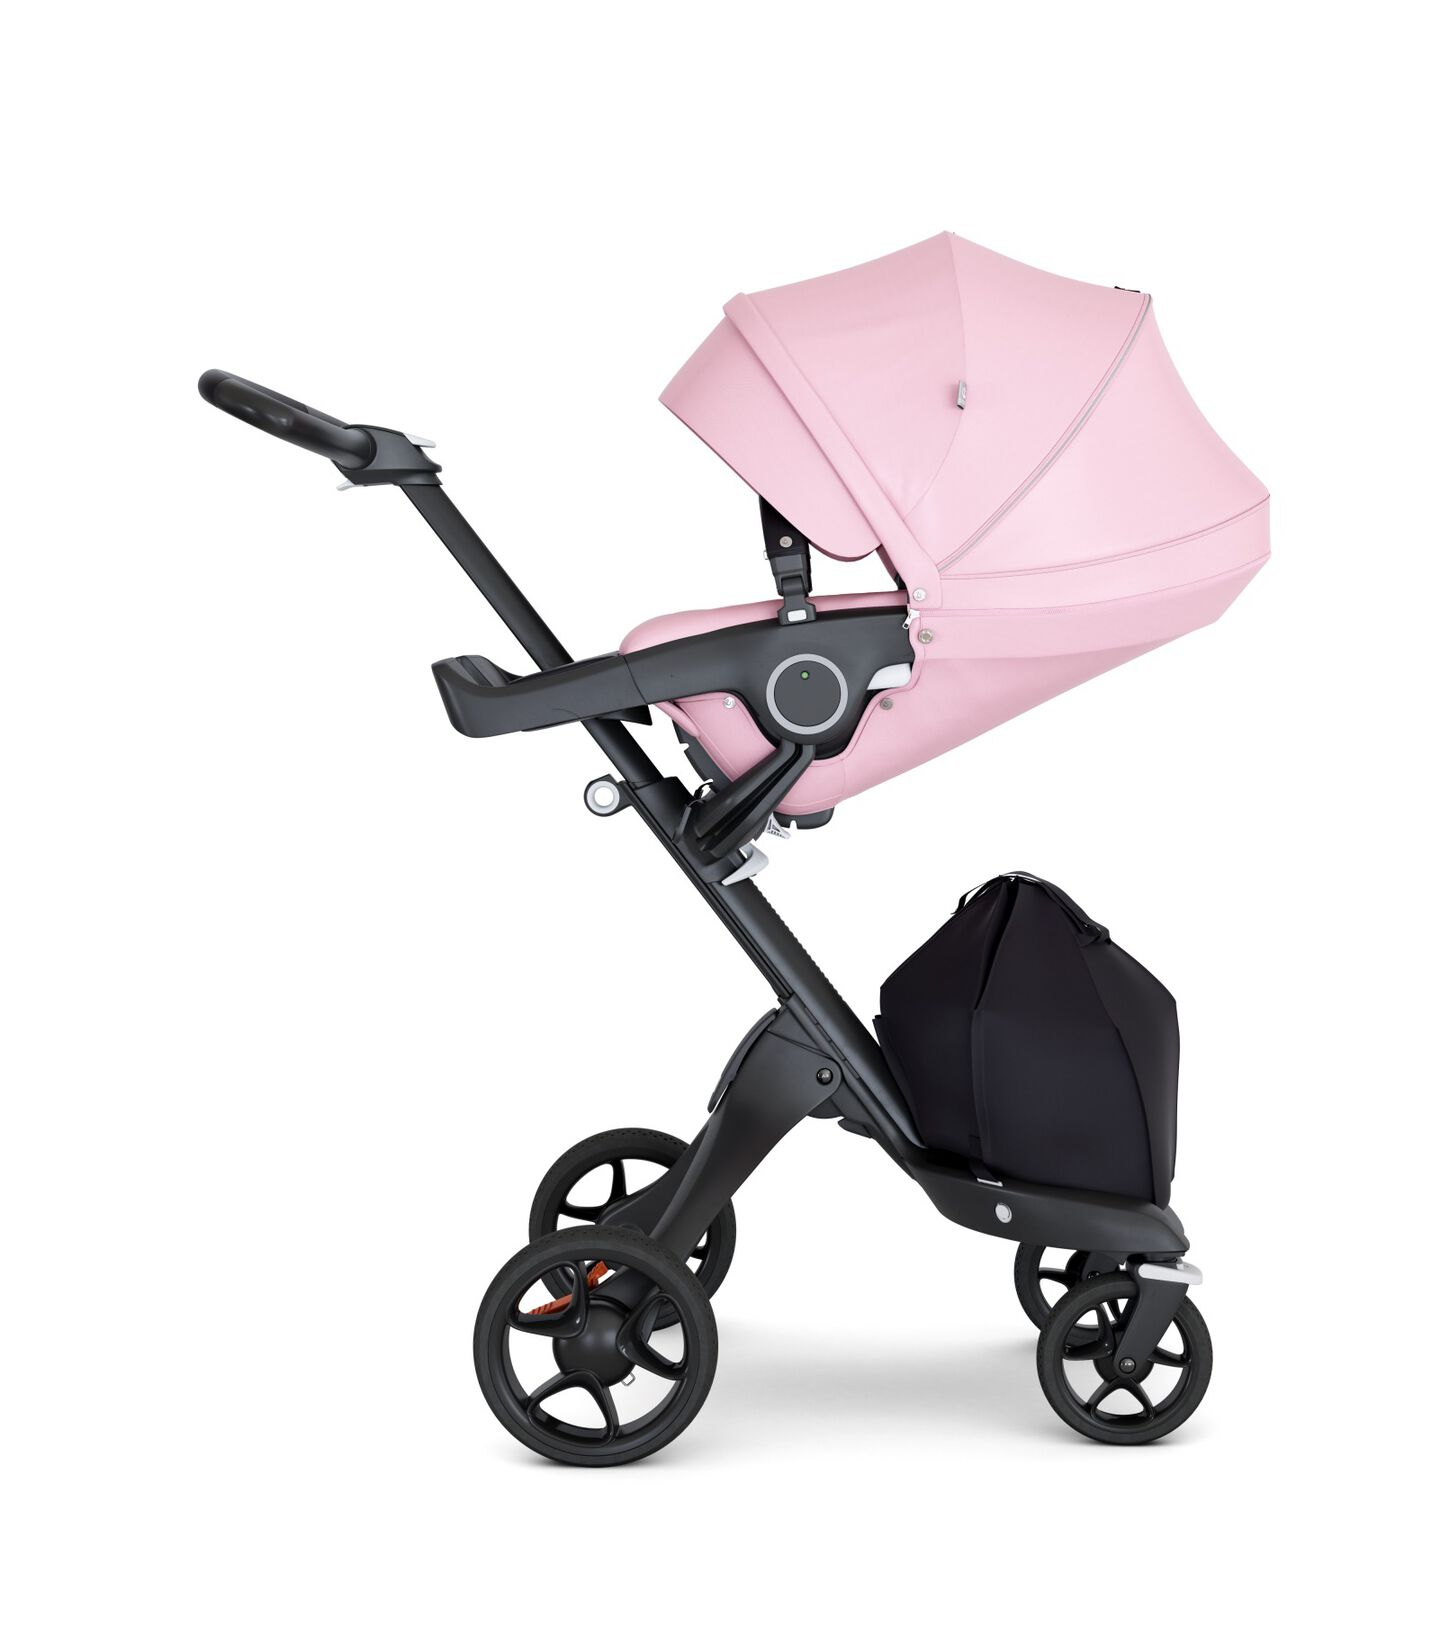 Stokke® Xplory® with Black Chassis and Leatherette Black handle. Stokke® Stroller Seat Lotus Pink with extended canopy.